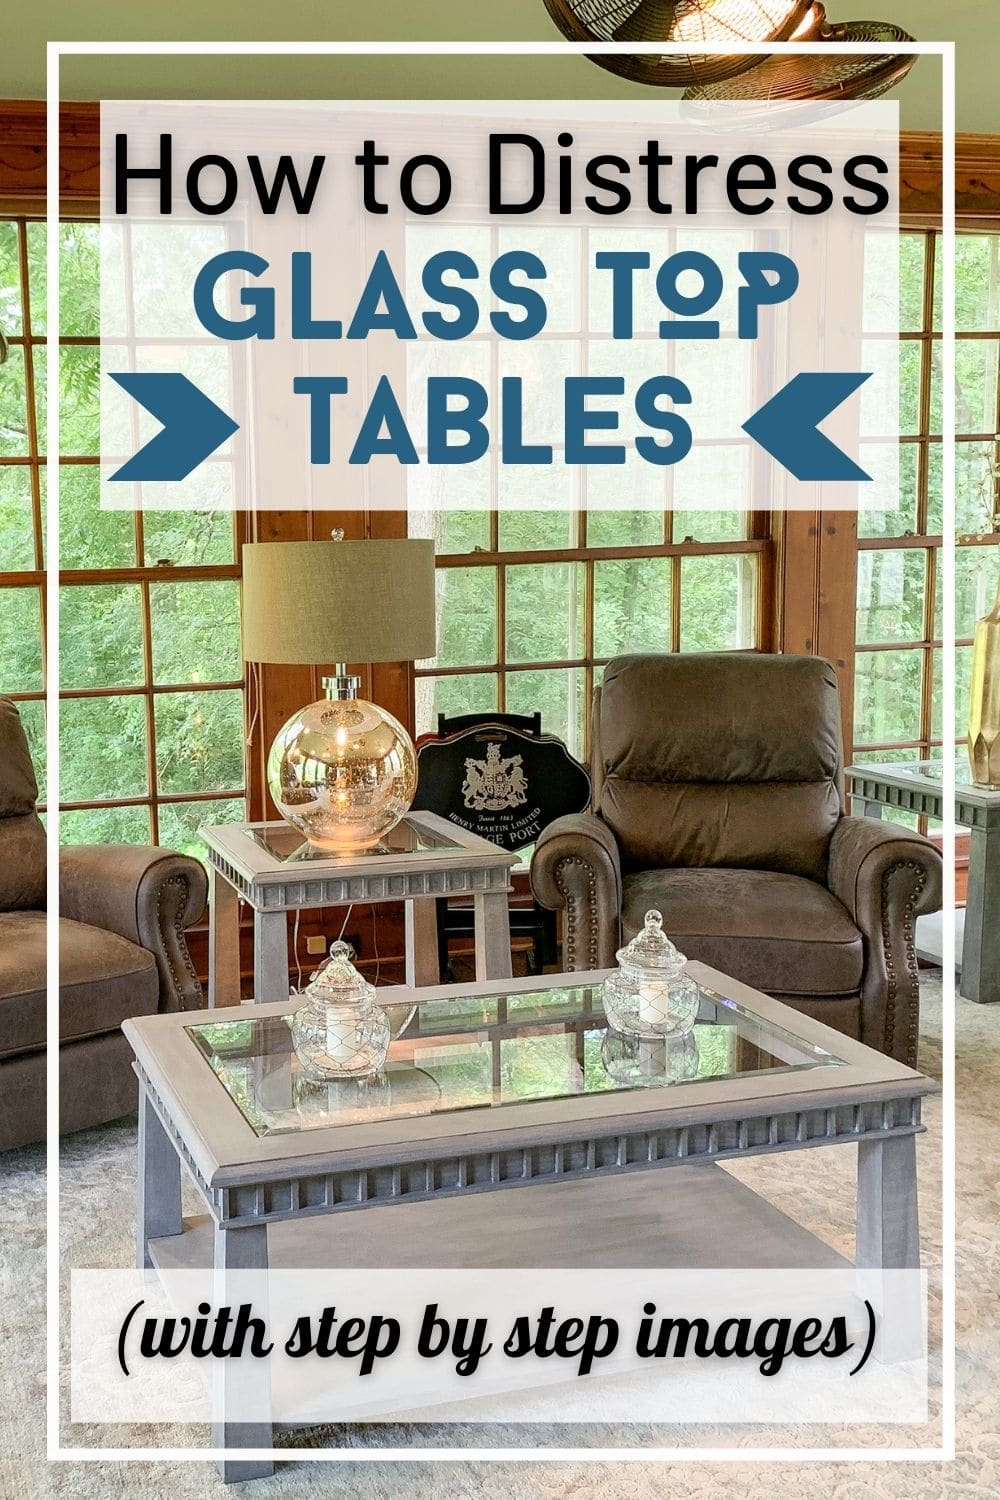 Glass top table in living room